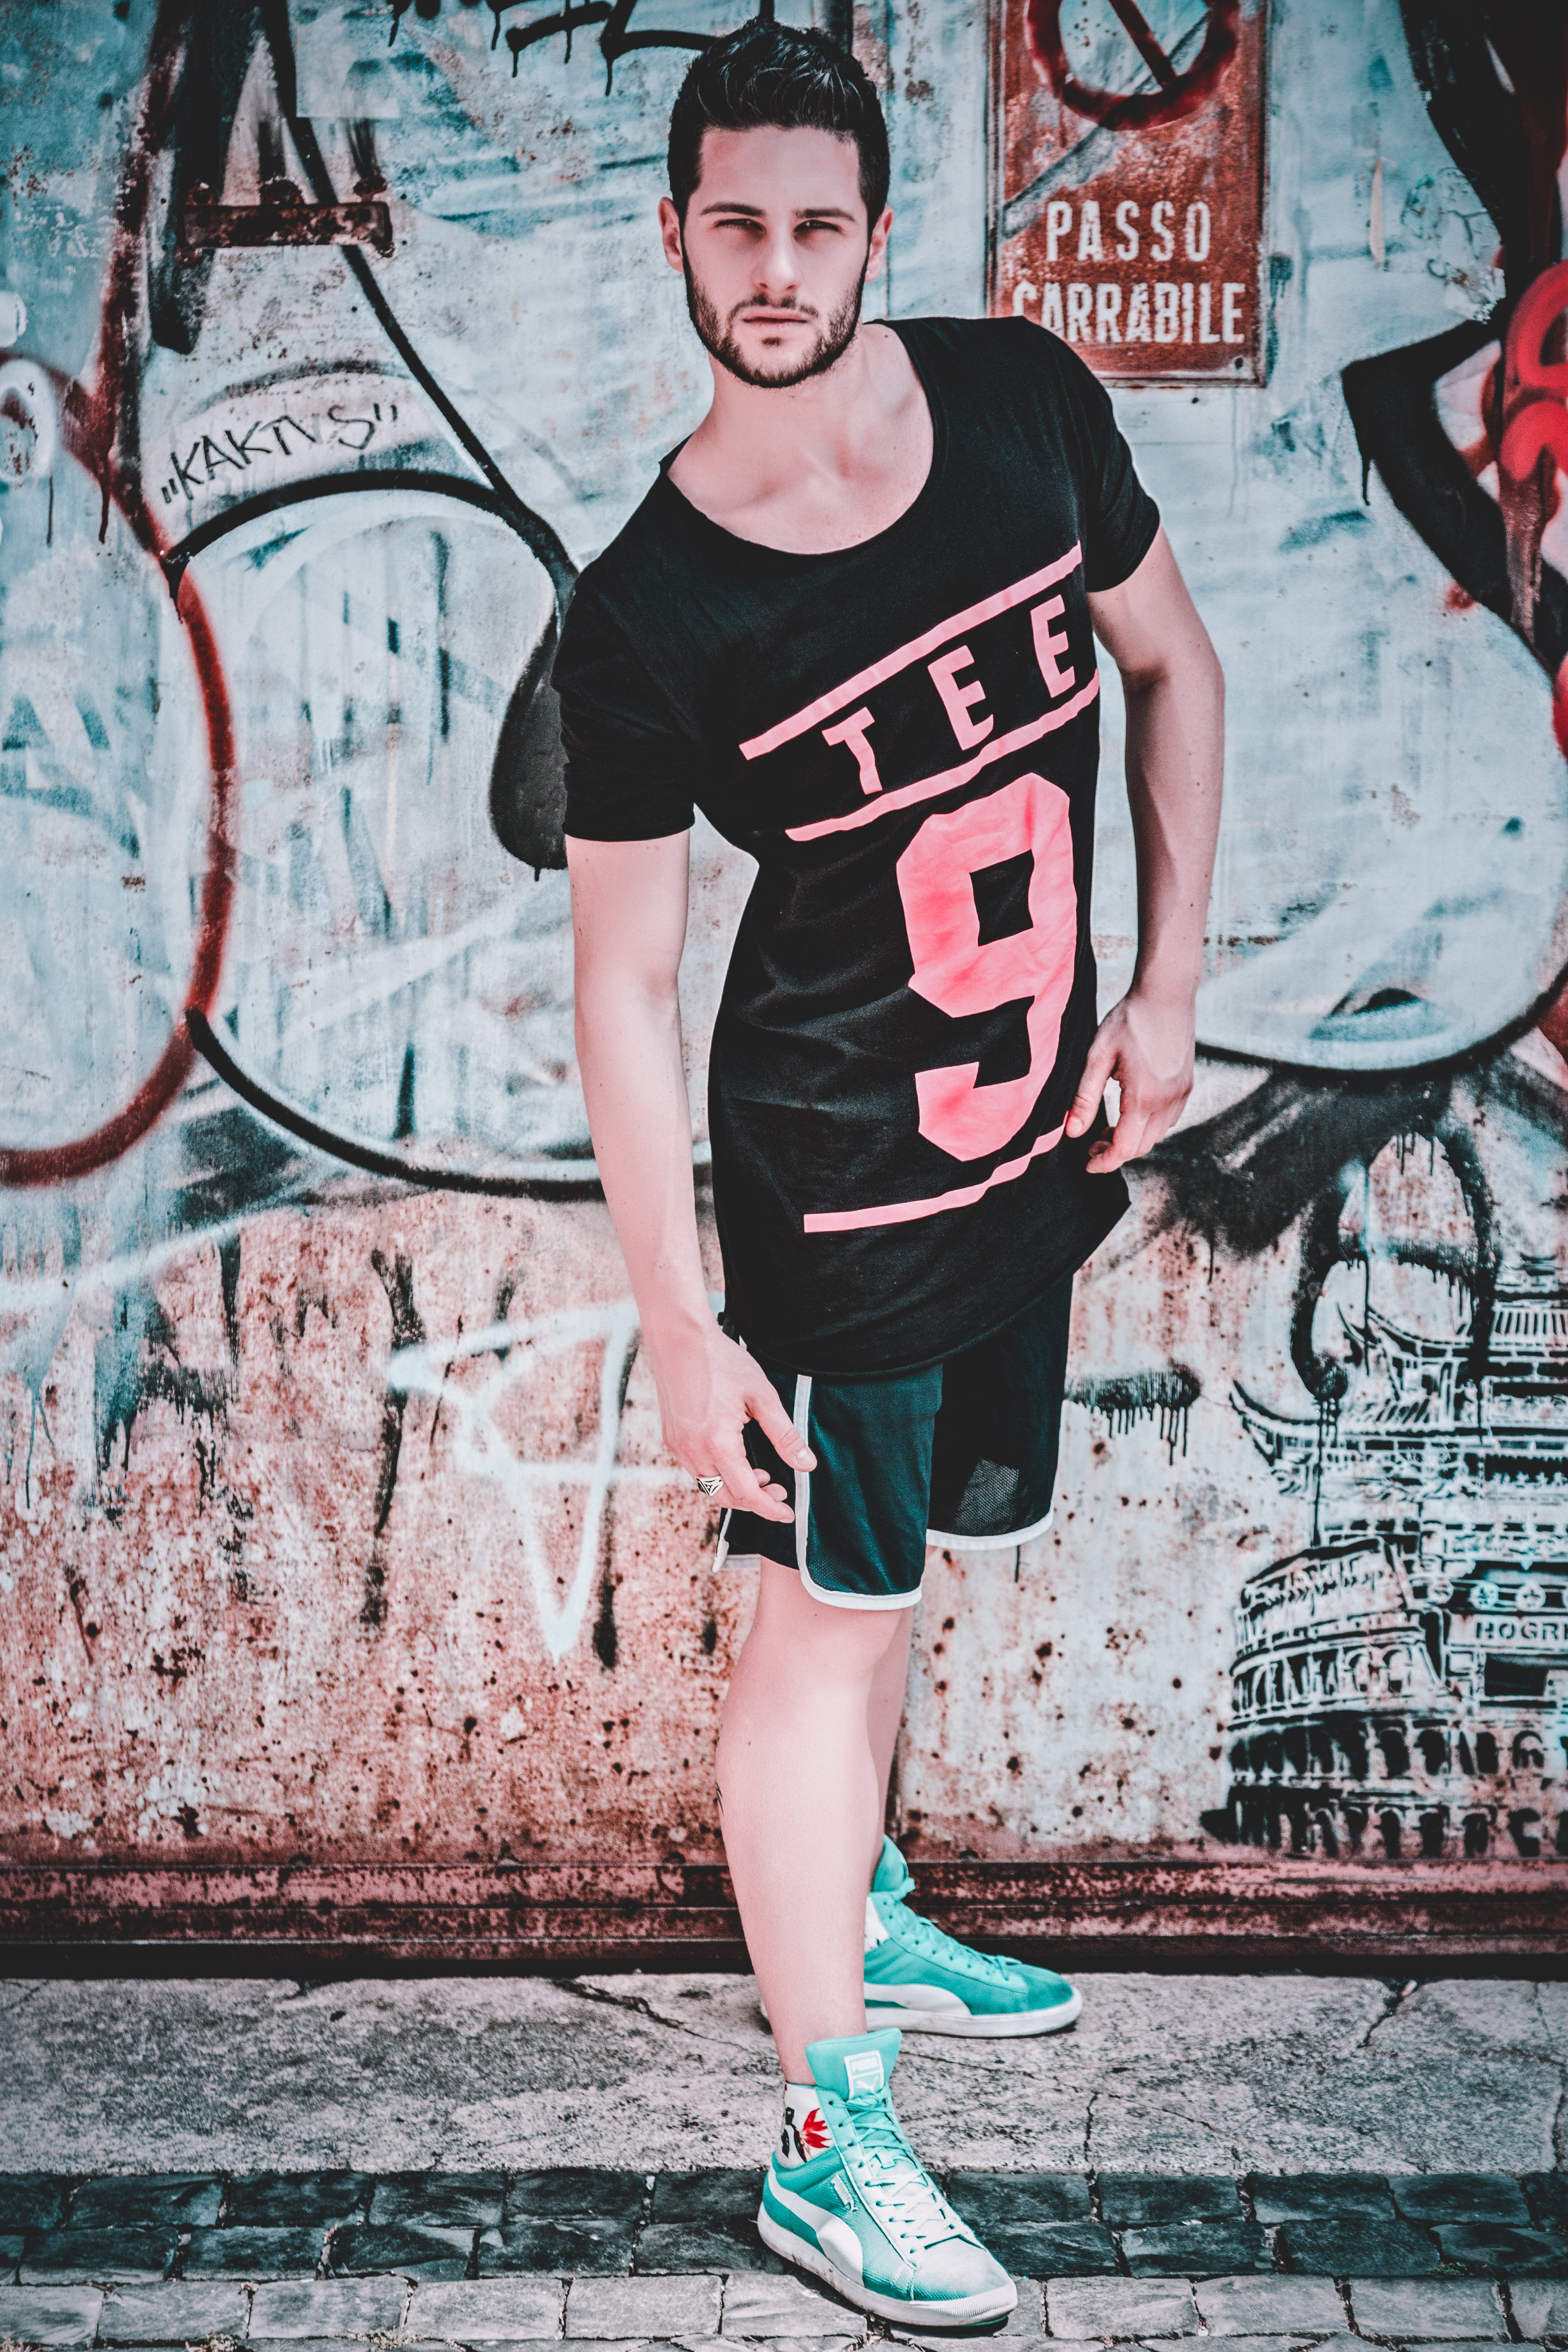 Man Wearing Black and Pink Tee 9-printed T-shirt in Front of Wall